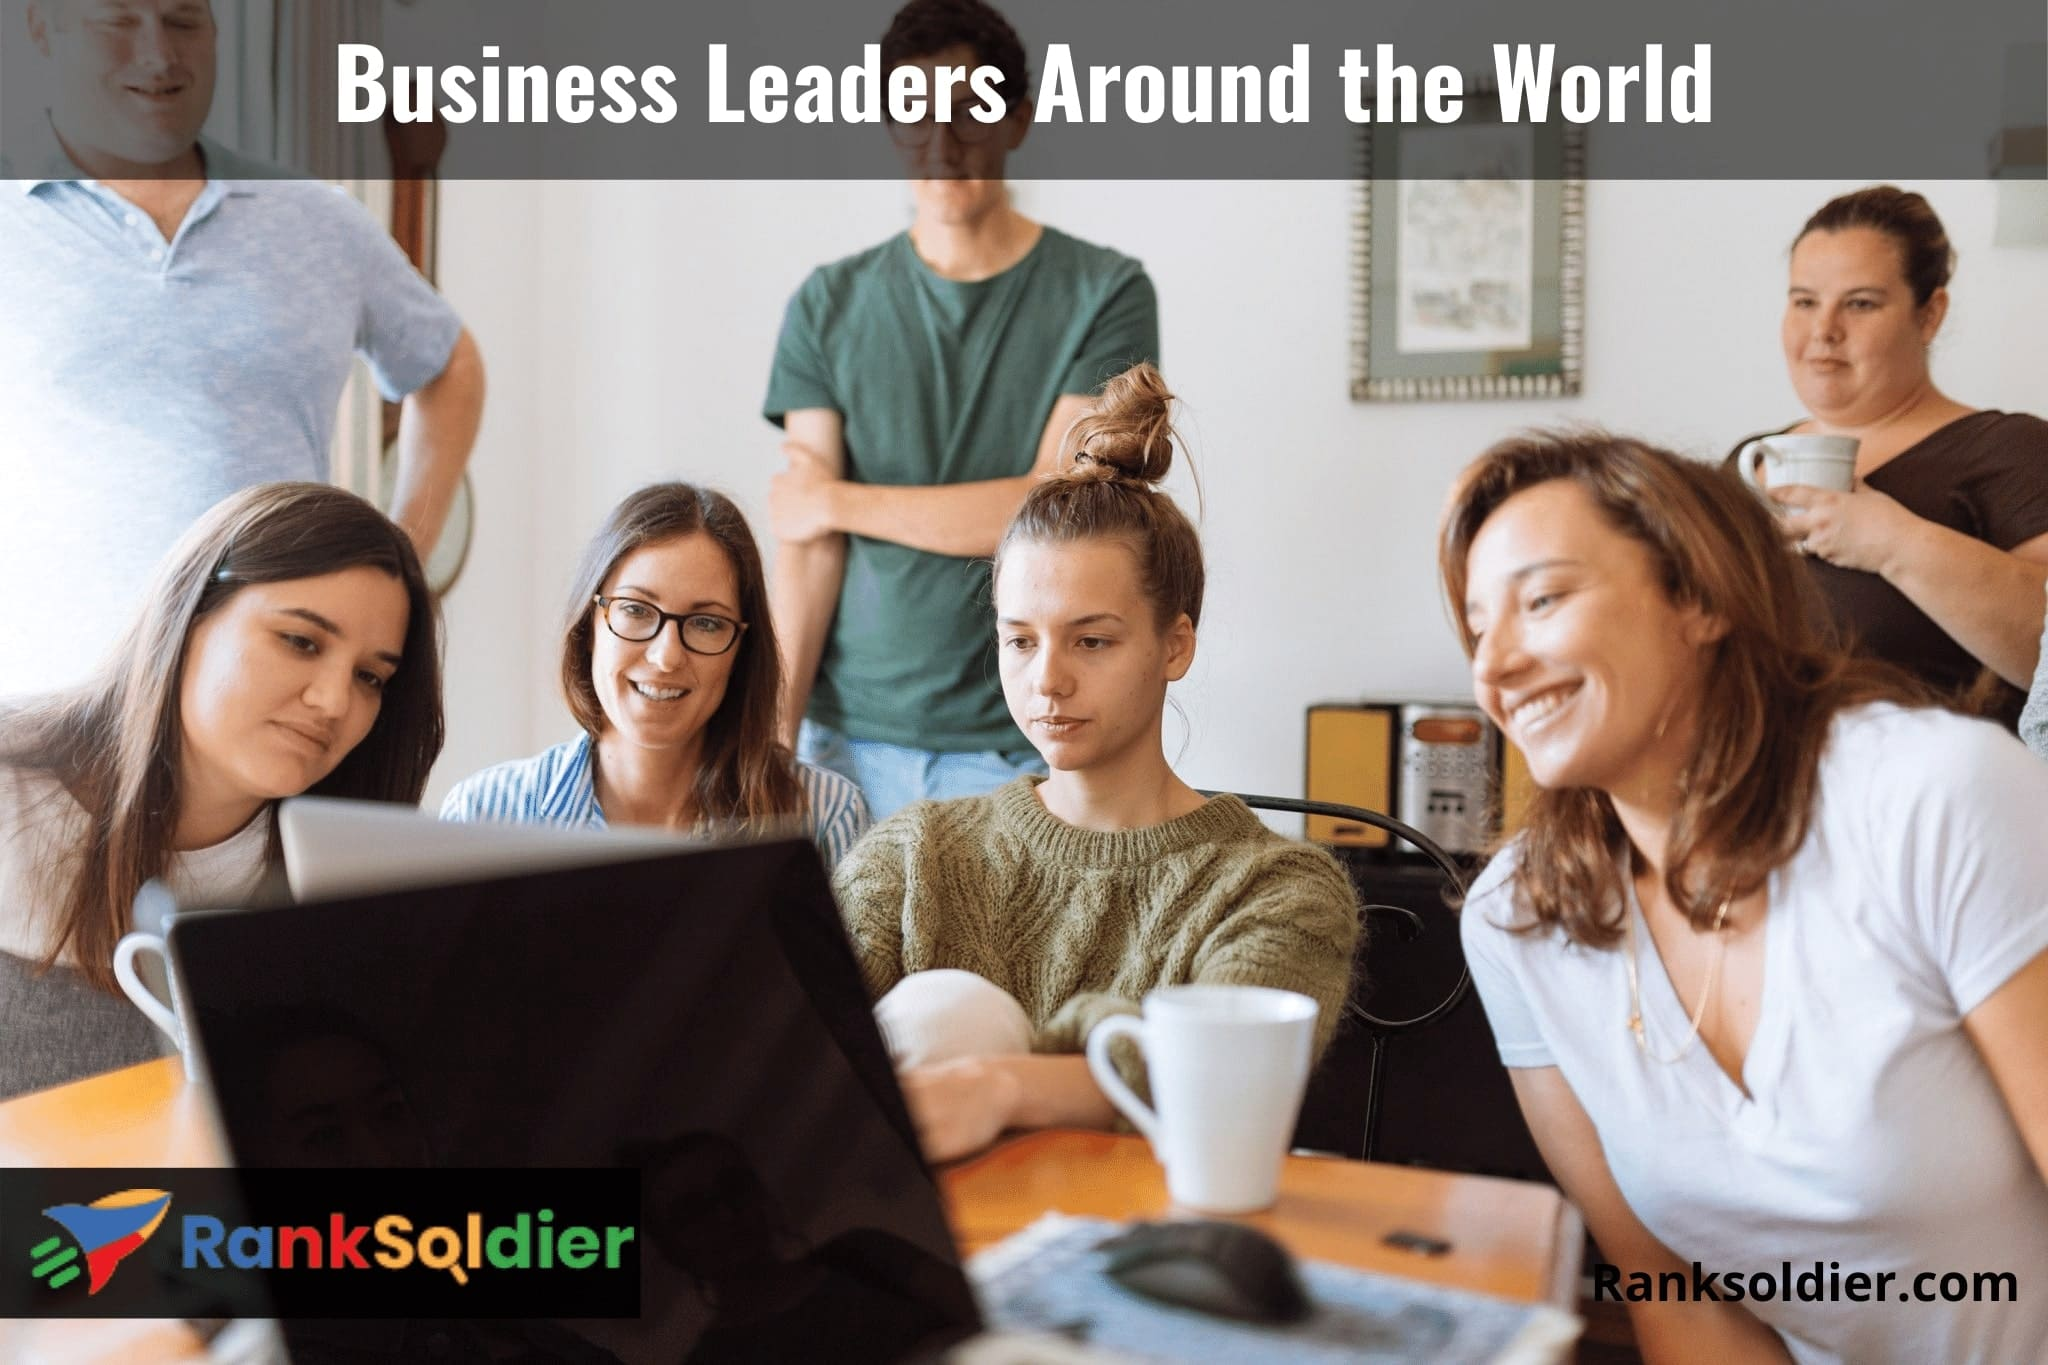 Business Leaders Around the World